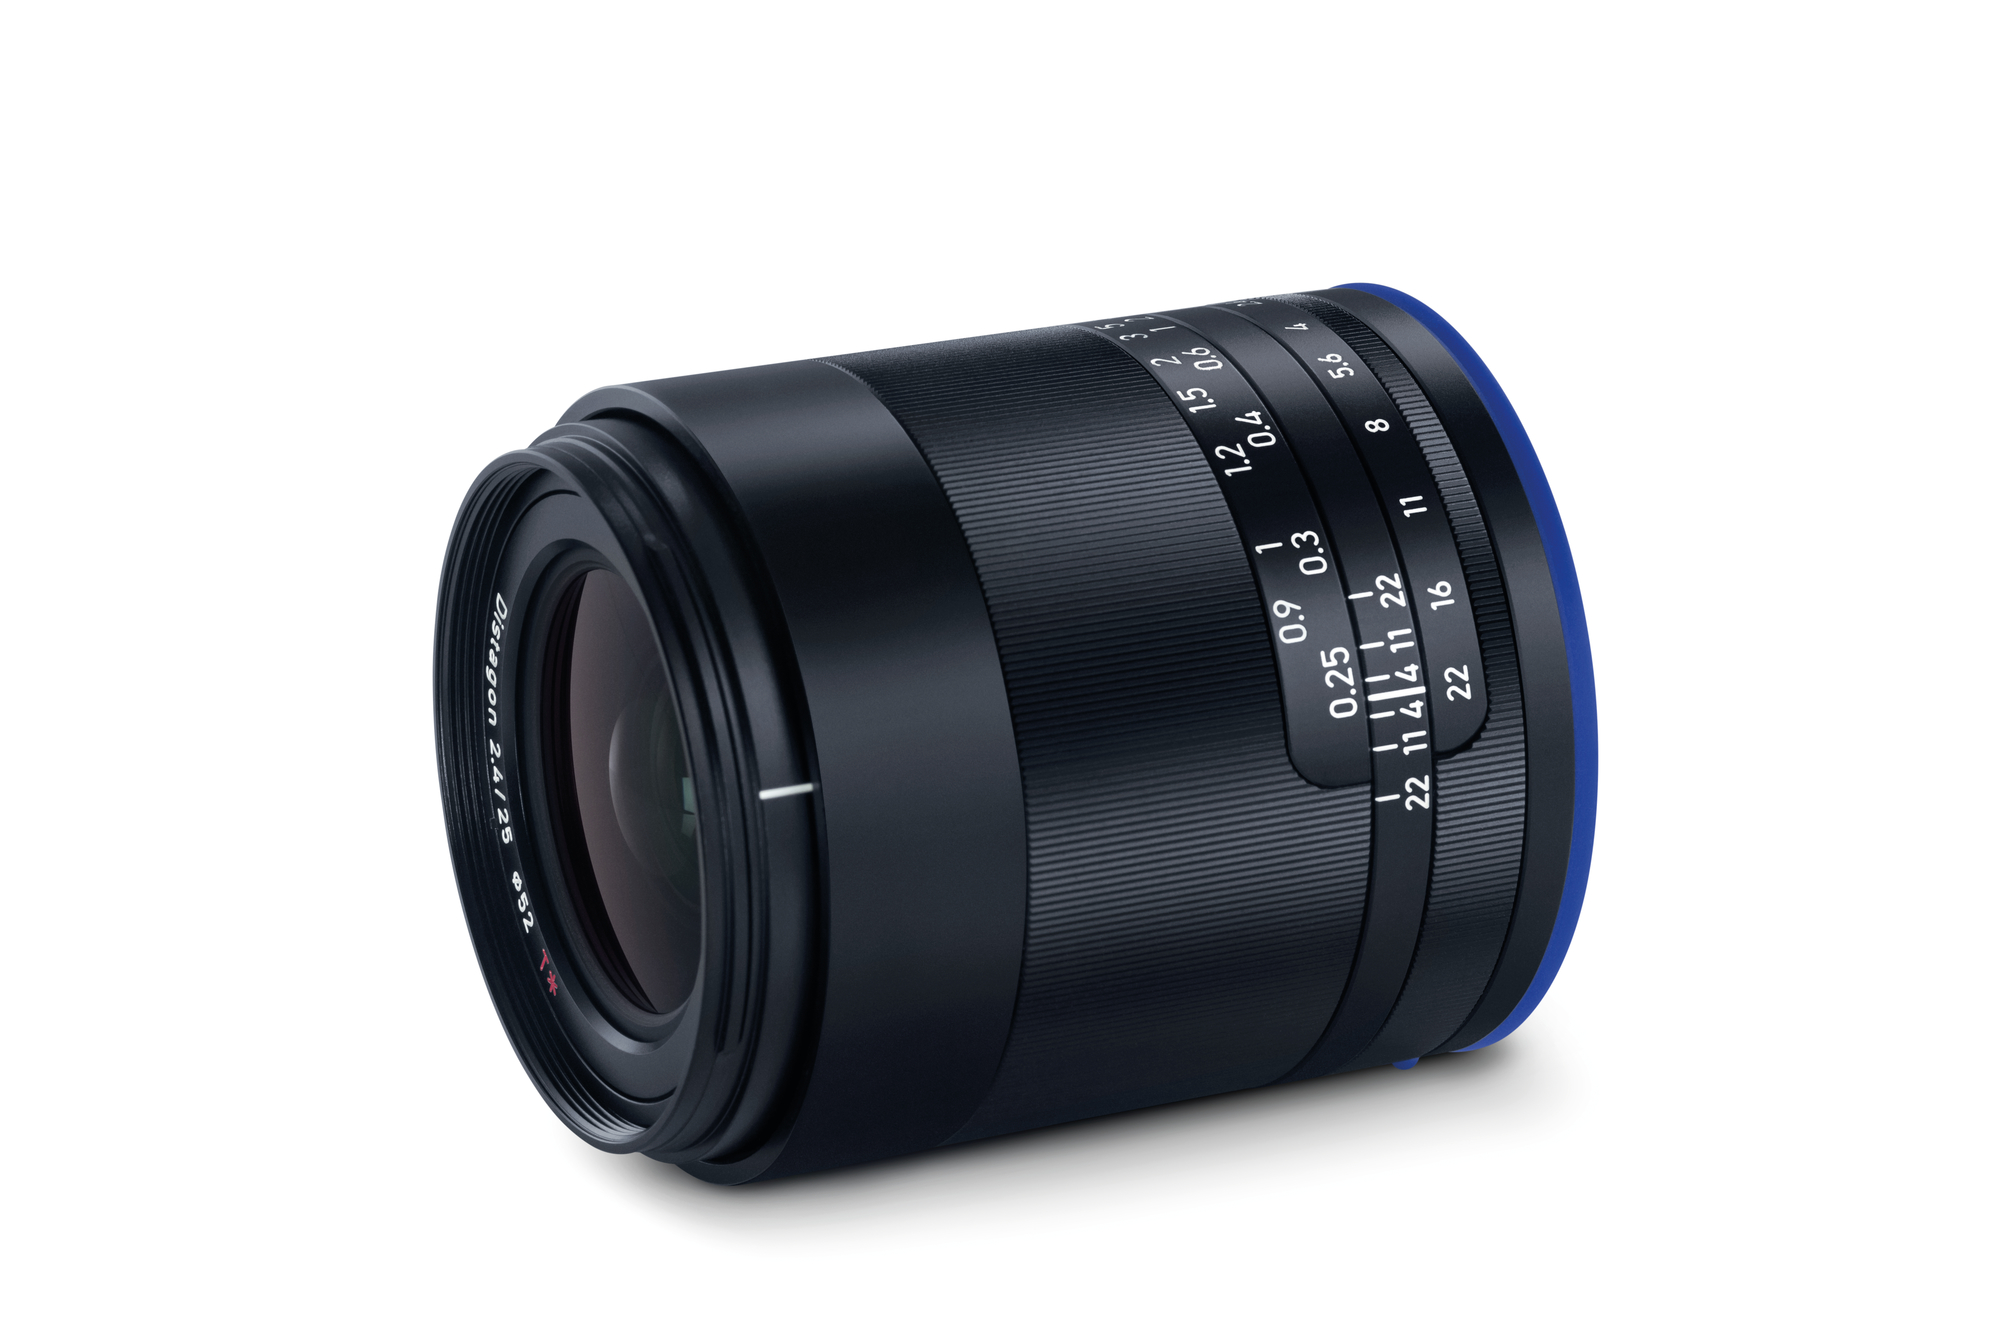 Zeiss Loxia 25mm f/2.4 lens announced